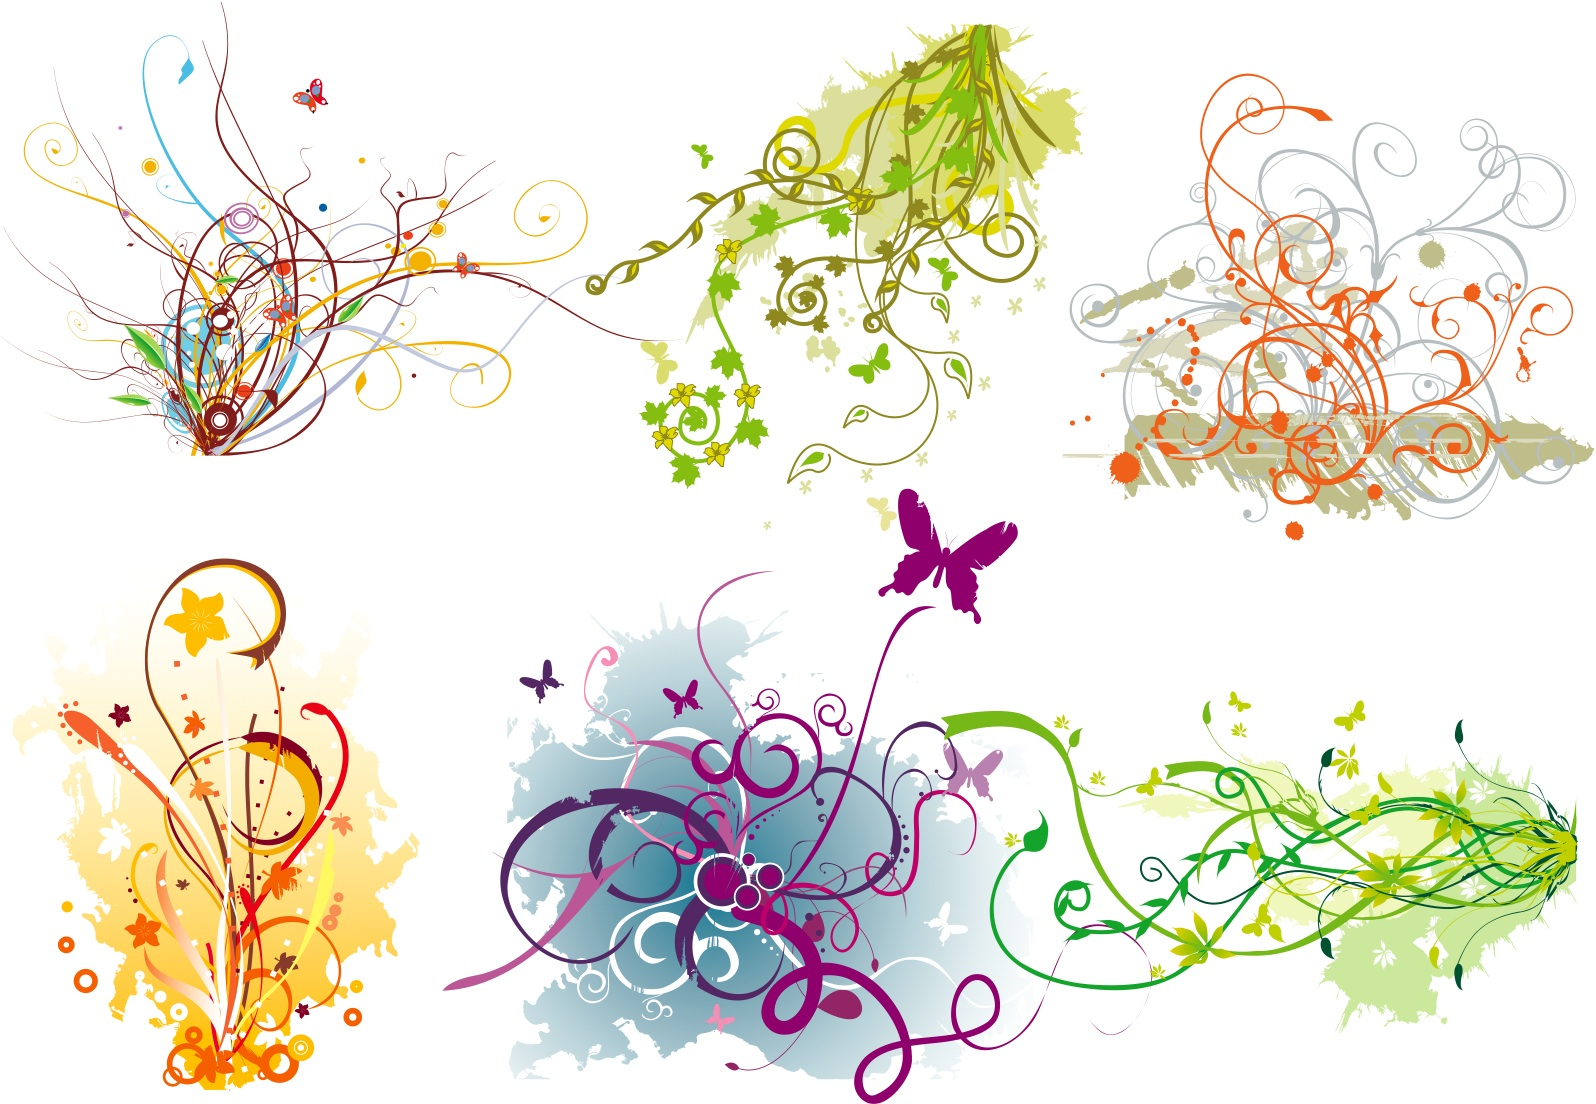 15 Vector Flourish Clutter Designs Images